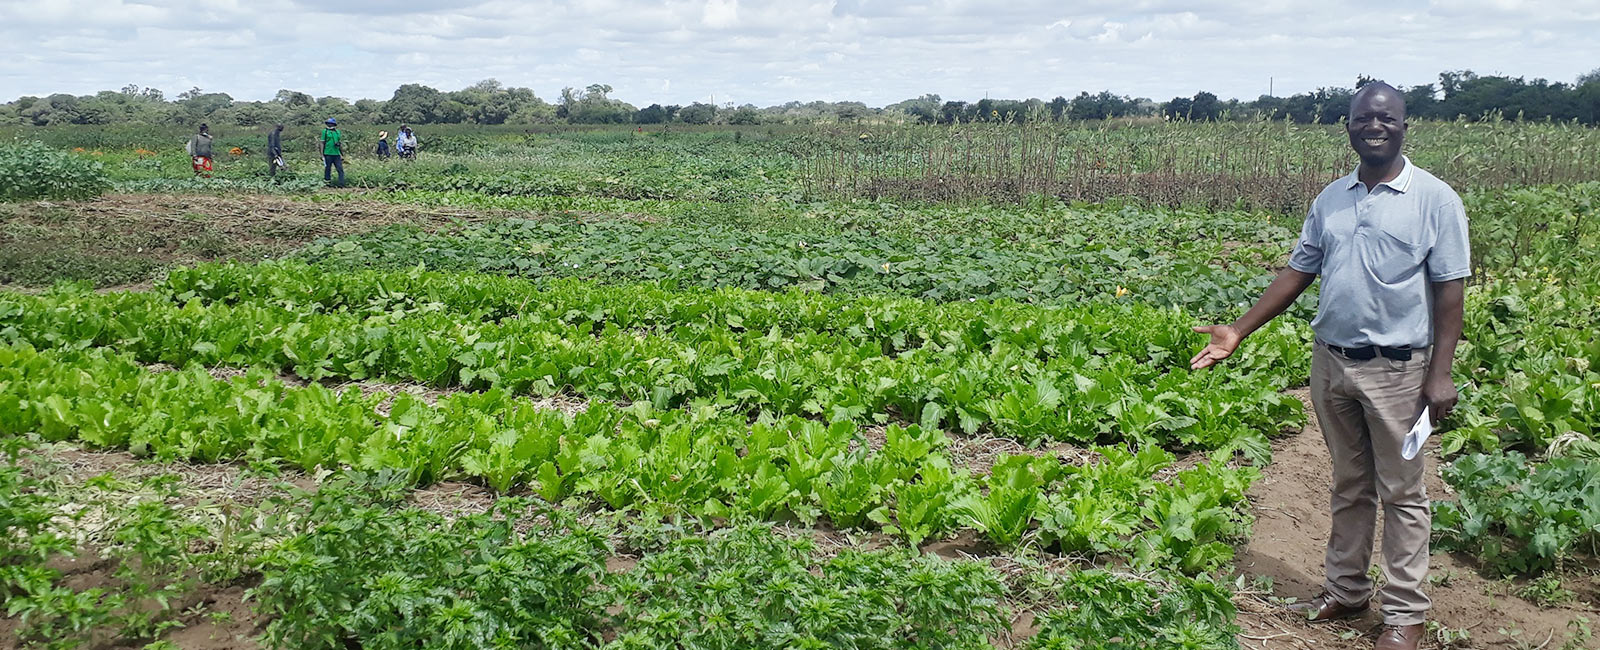 Empowering Organic Leaders to Promote Sustainability in Zambia and Zimbabwe